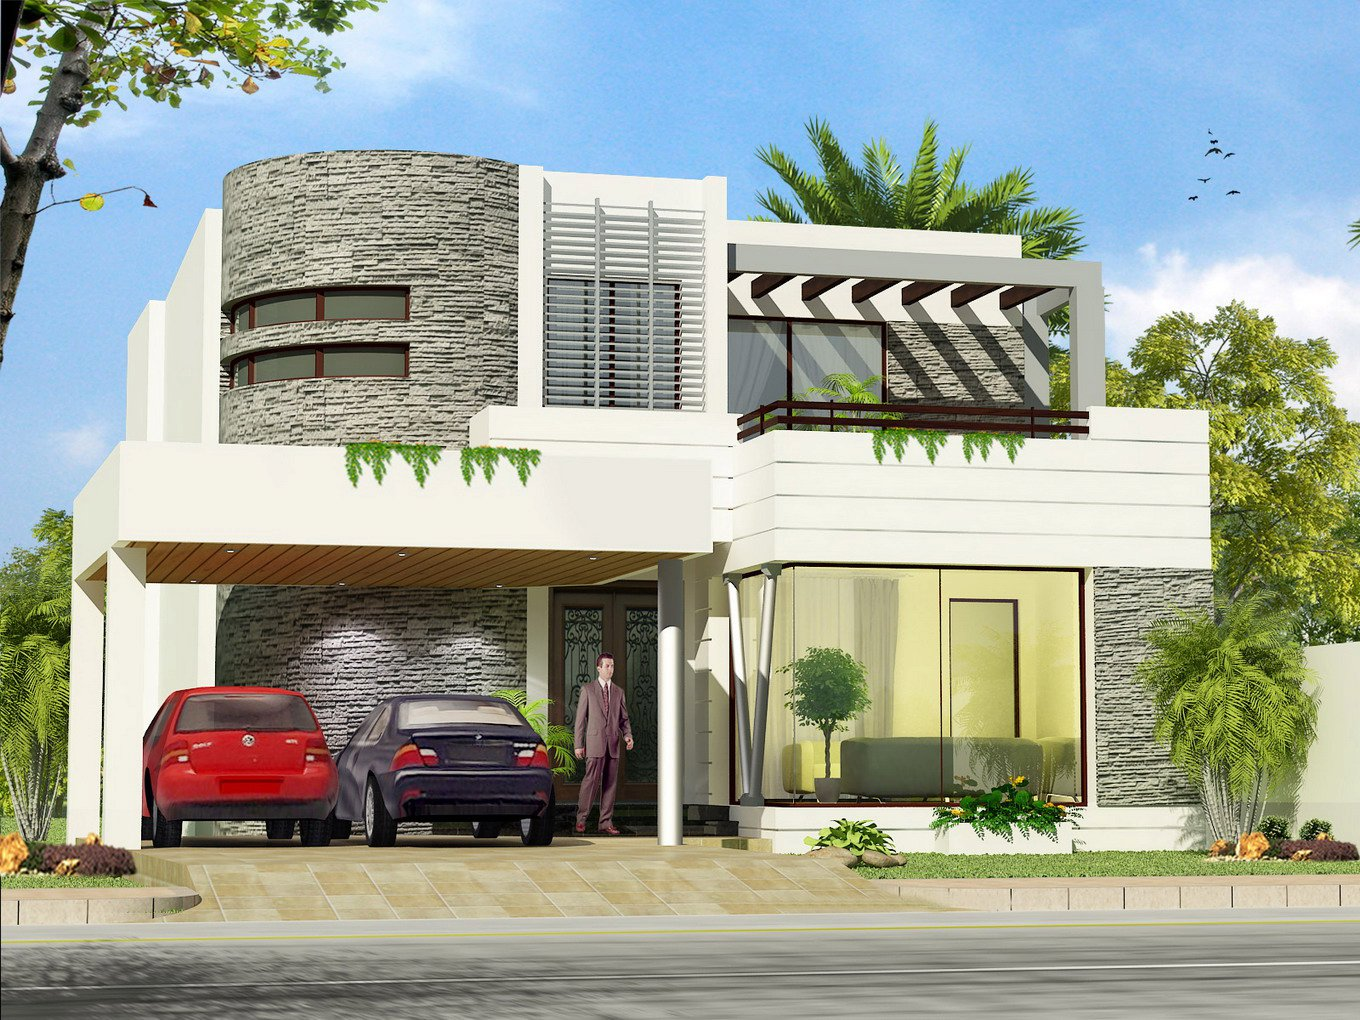 Front Elevation Of Small Houses - Room Design Ideas on best modern kitchen designs, best modern house designs, best modern bathroom designs, best modern fireplace designs,